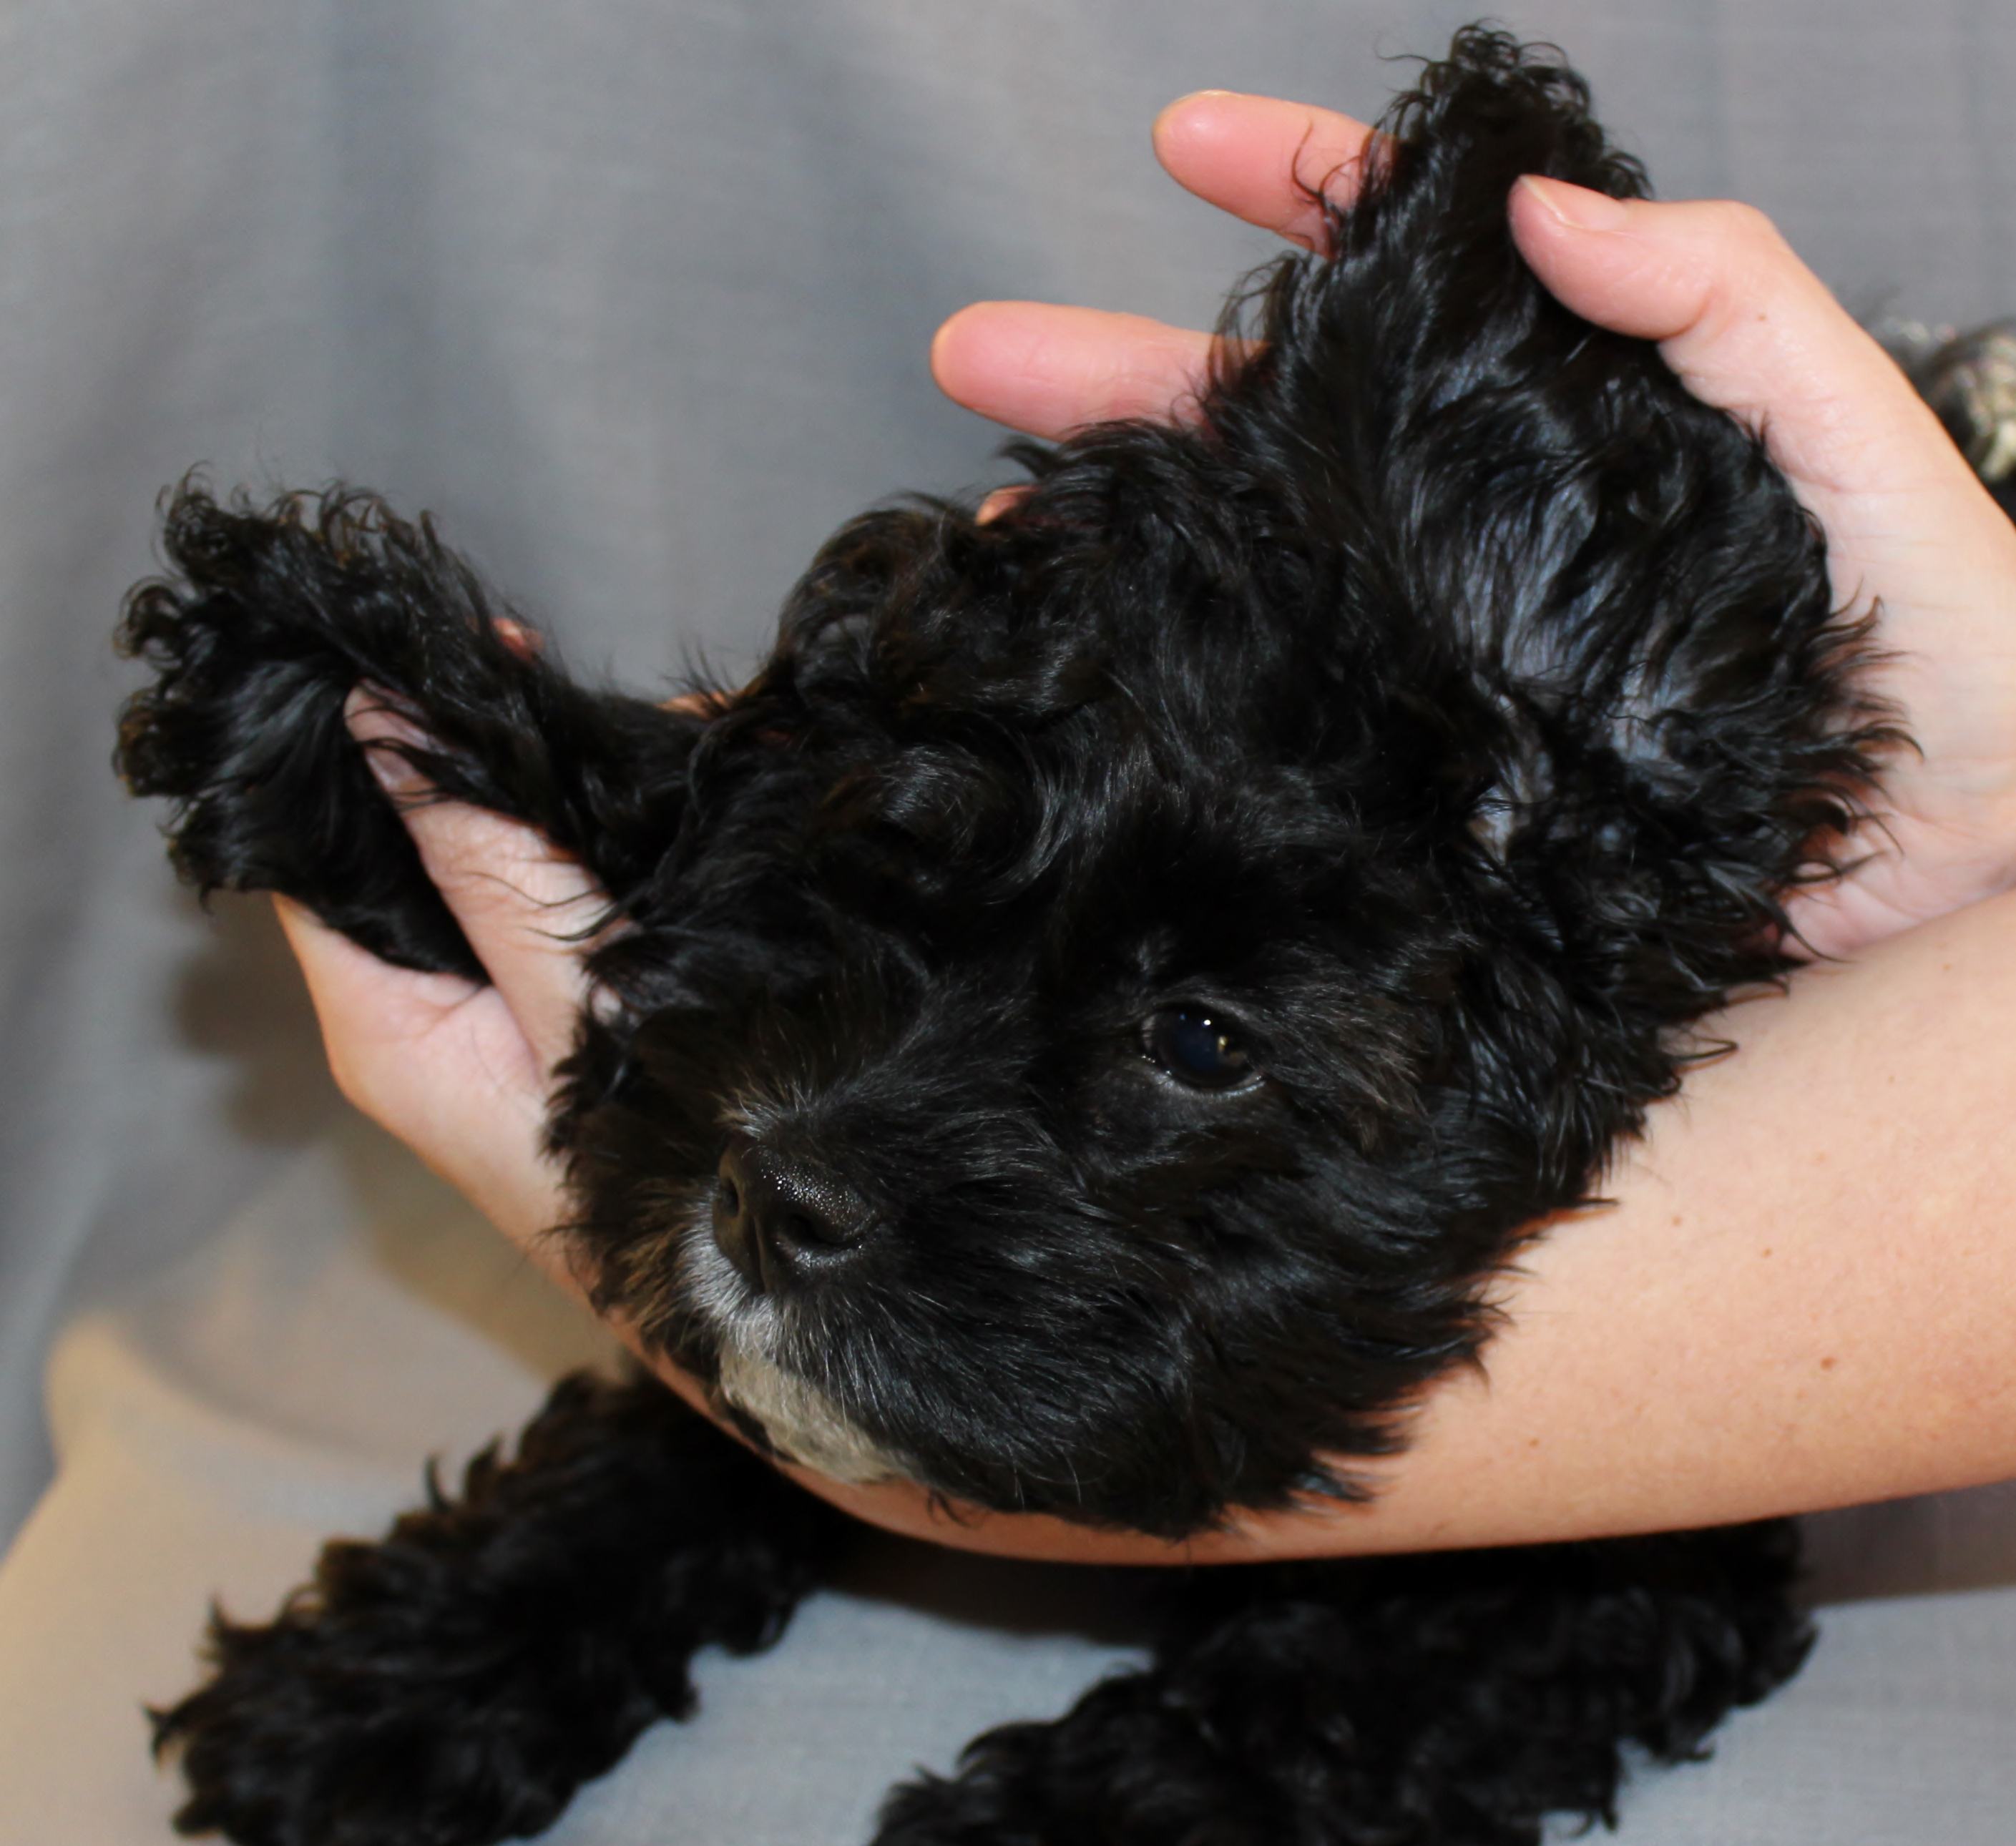 Fullsize Of How To Treat Dog Ear Infection Without Vet